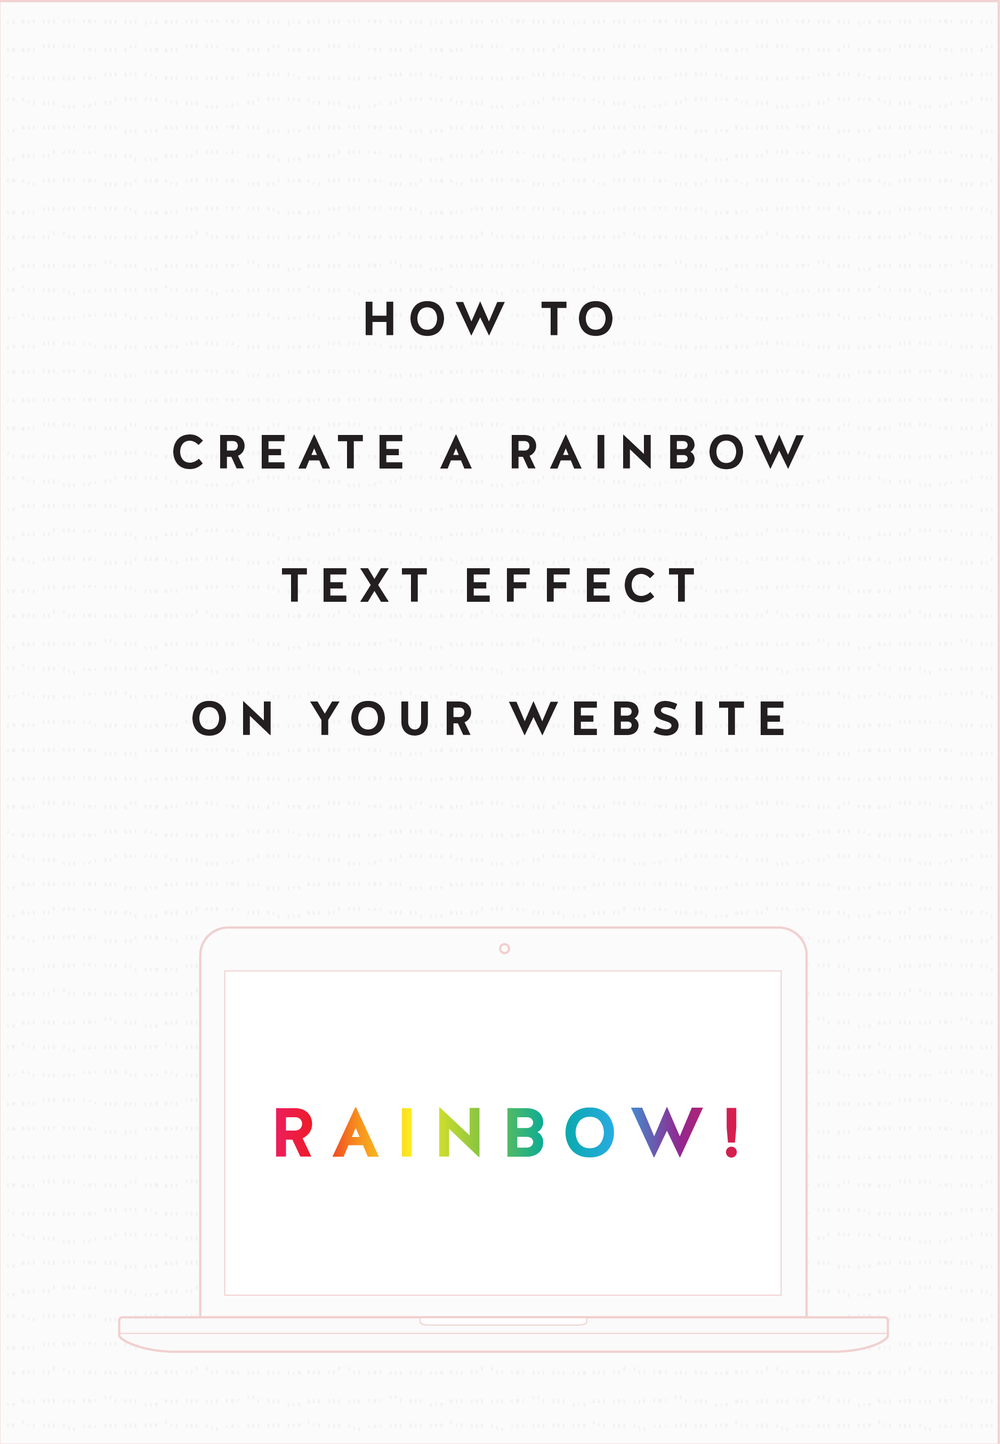 HOW-TO-CREATE-A-RAINBOW-TEXT-EFFECT-ON-YOUR-WEBSITE-02.png